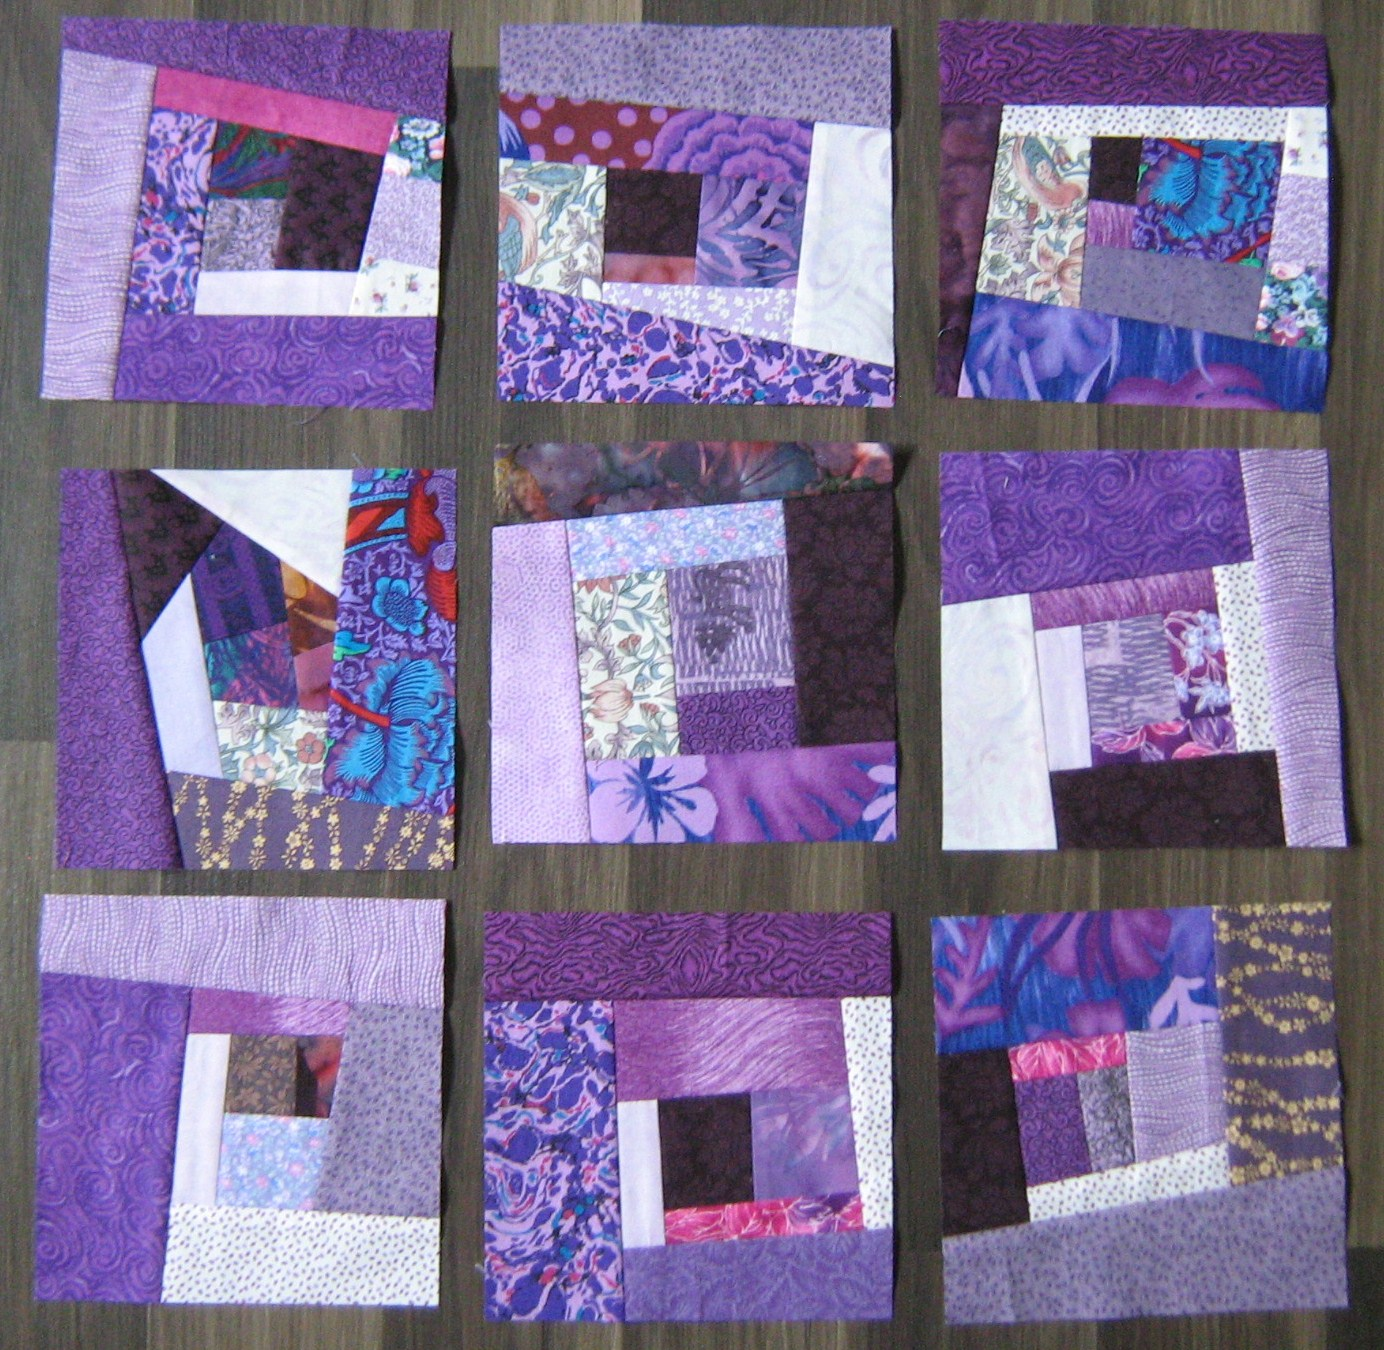 inch by inch quilting sweet violets. Black Bedroom Furniture Sets. Home Design Ideas